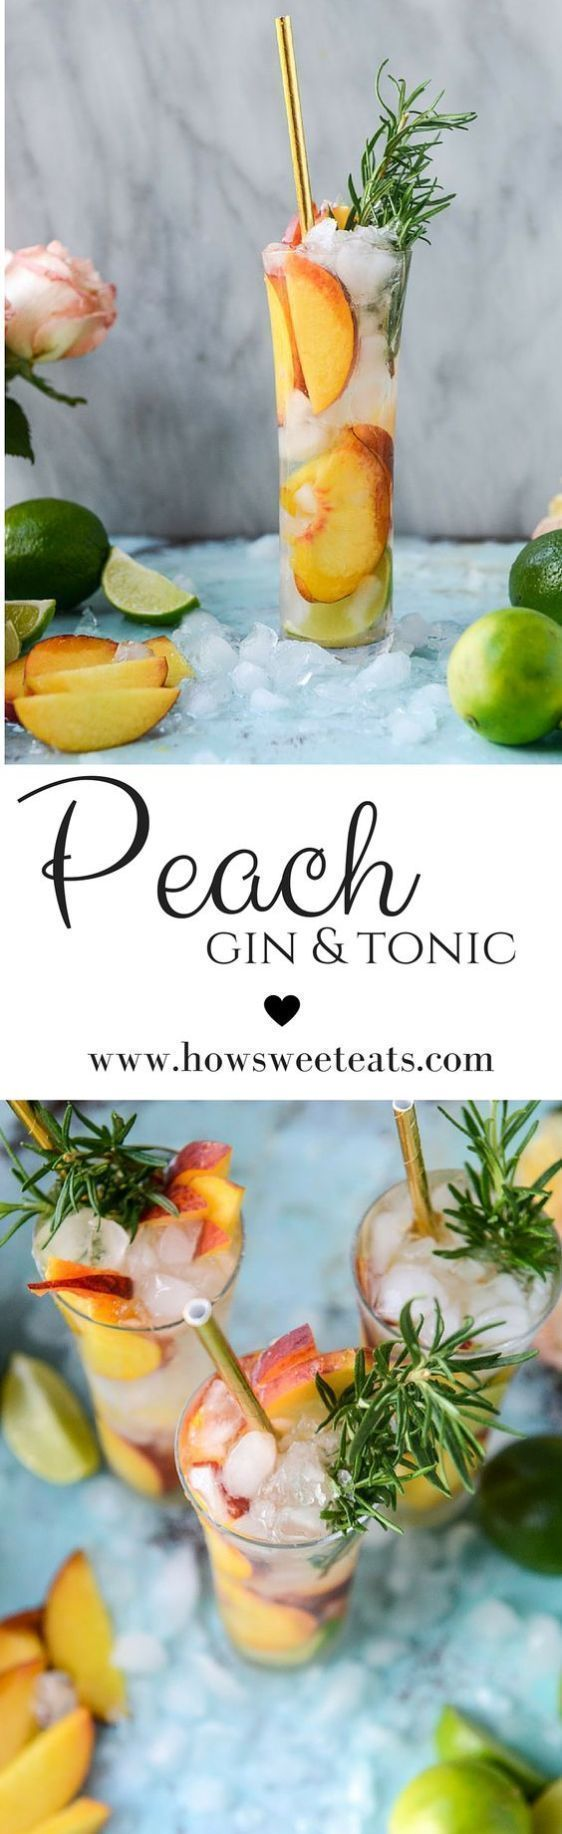 Top 10 Summer Cocktails to Try This Summer #peachideas